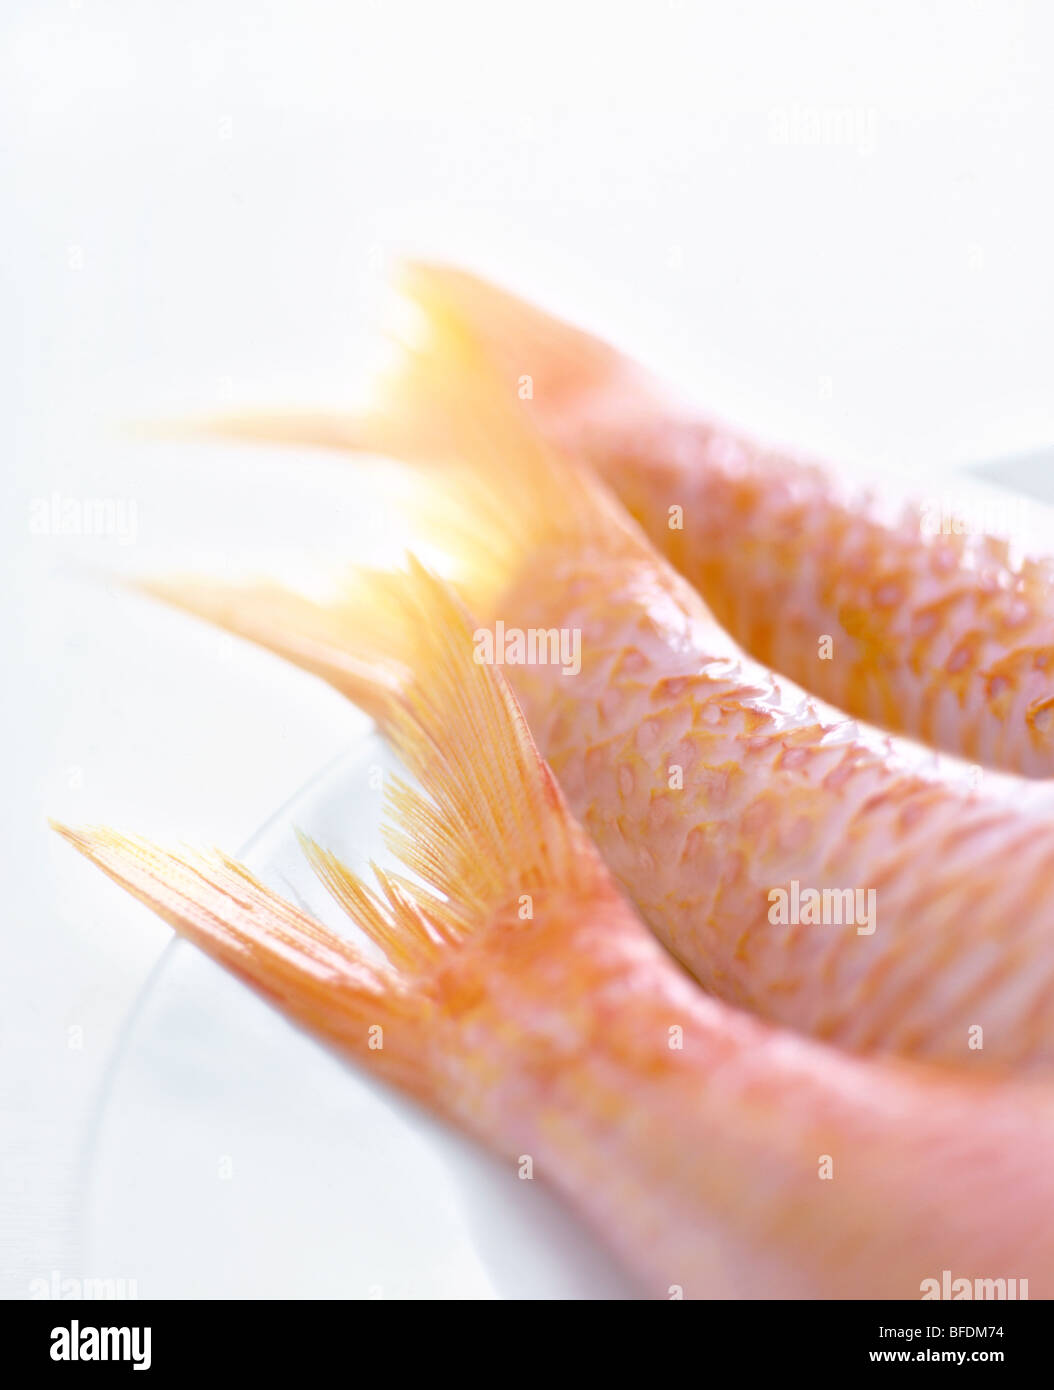 Queues de poisson Photo Stock